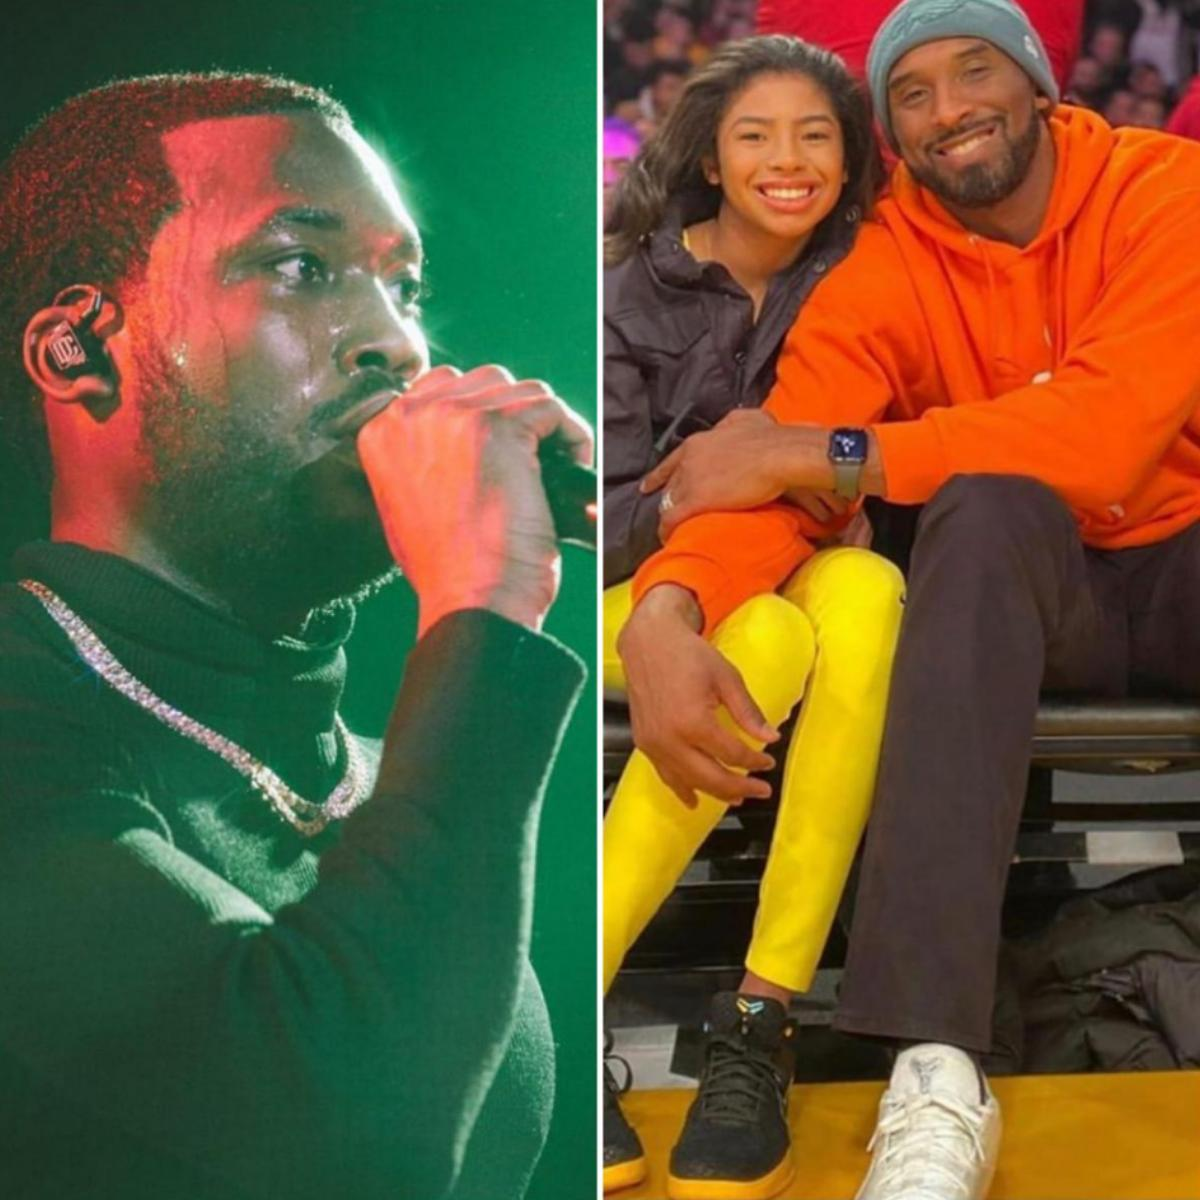 Meek Mill Reveals Whole Club Started Chanting Kobe